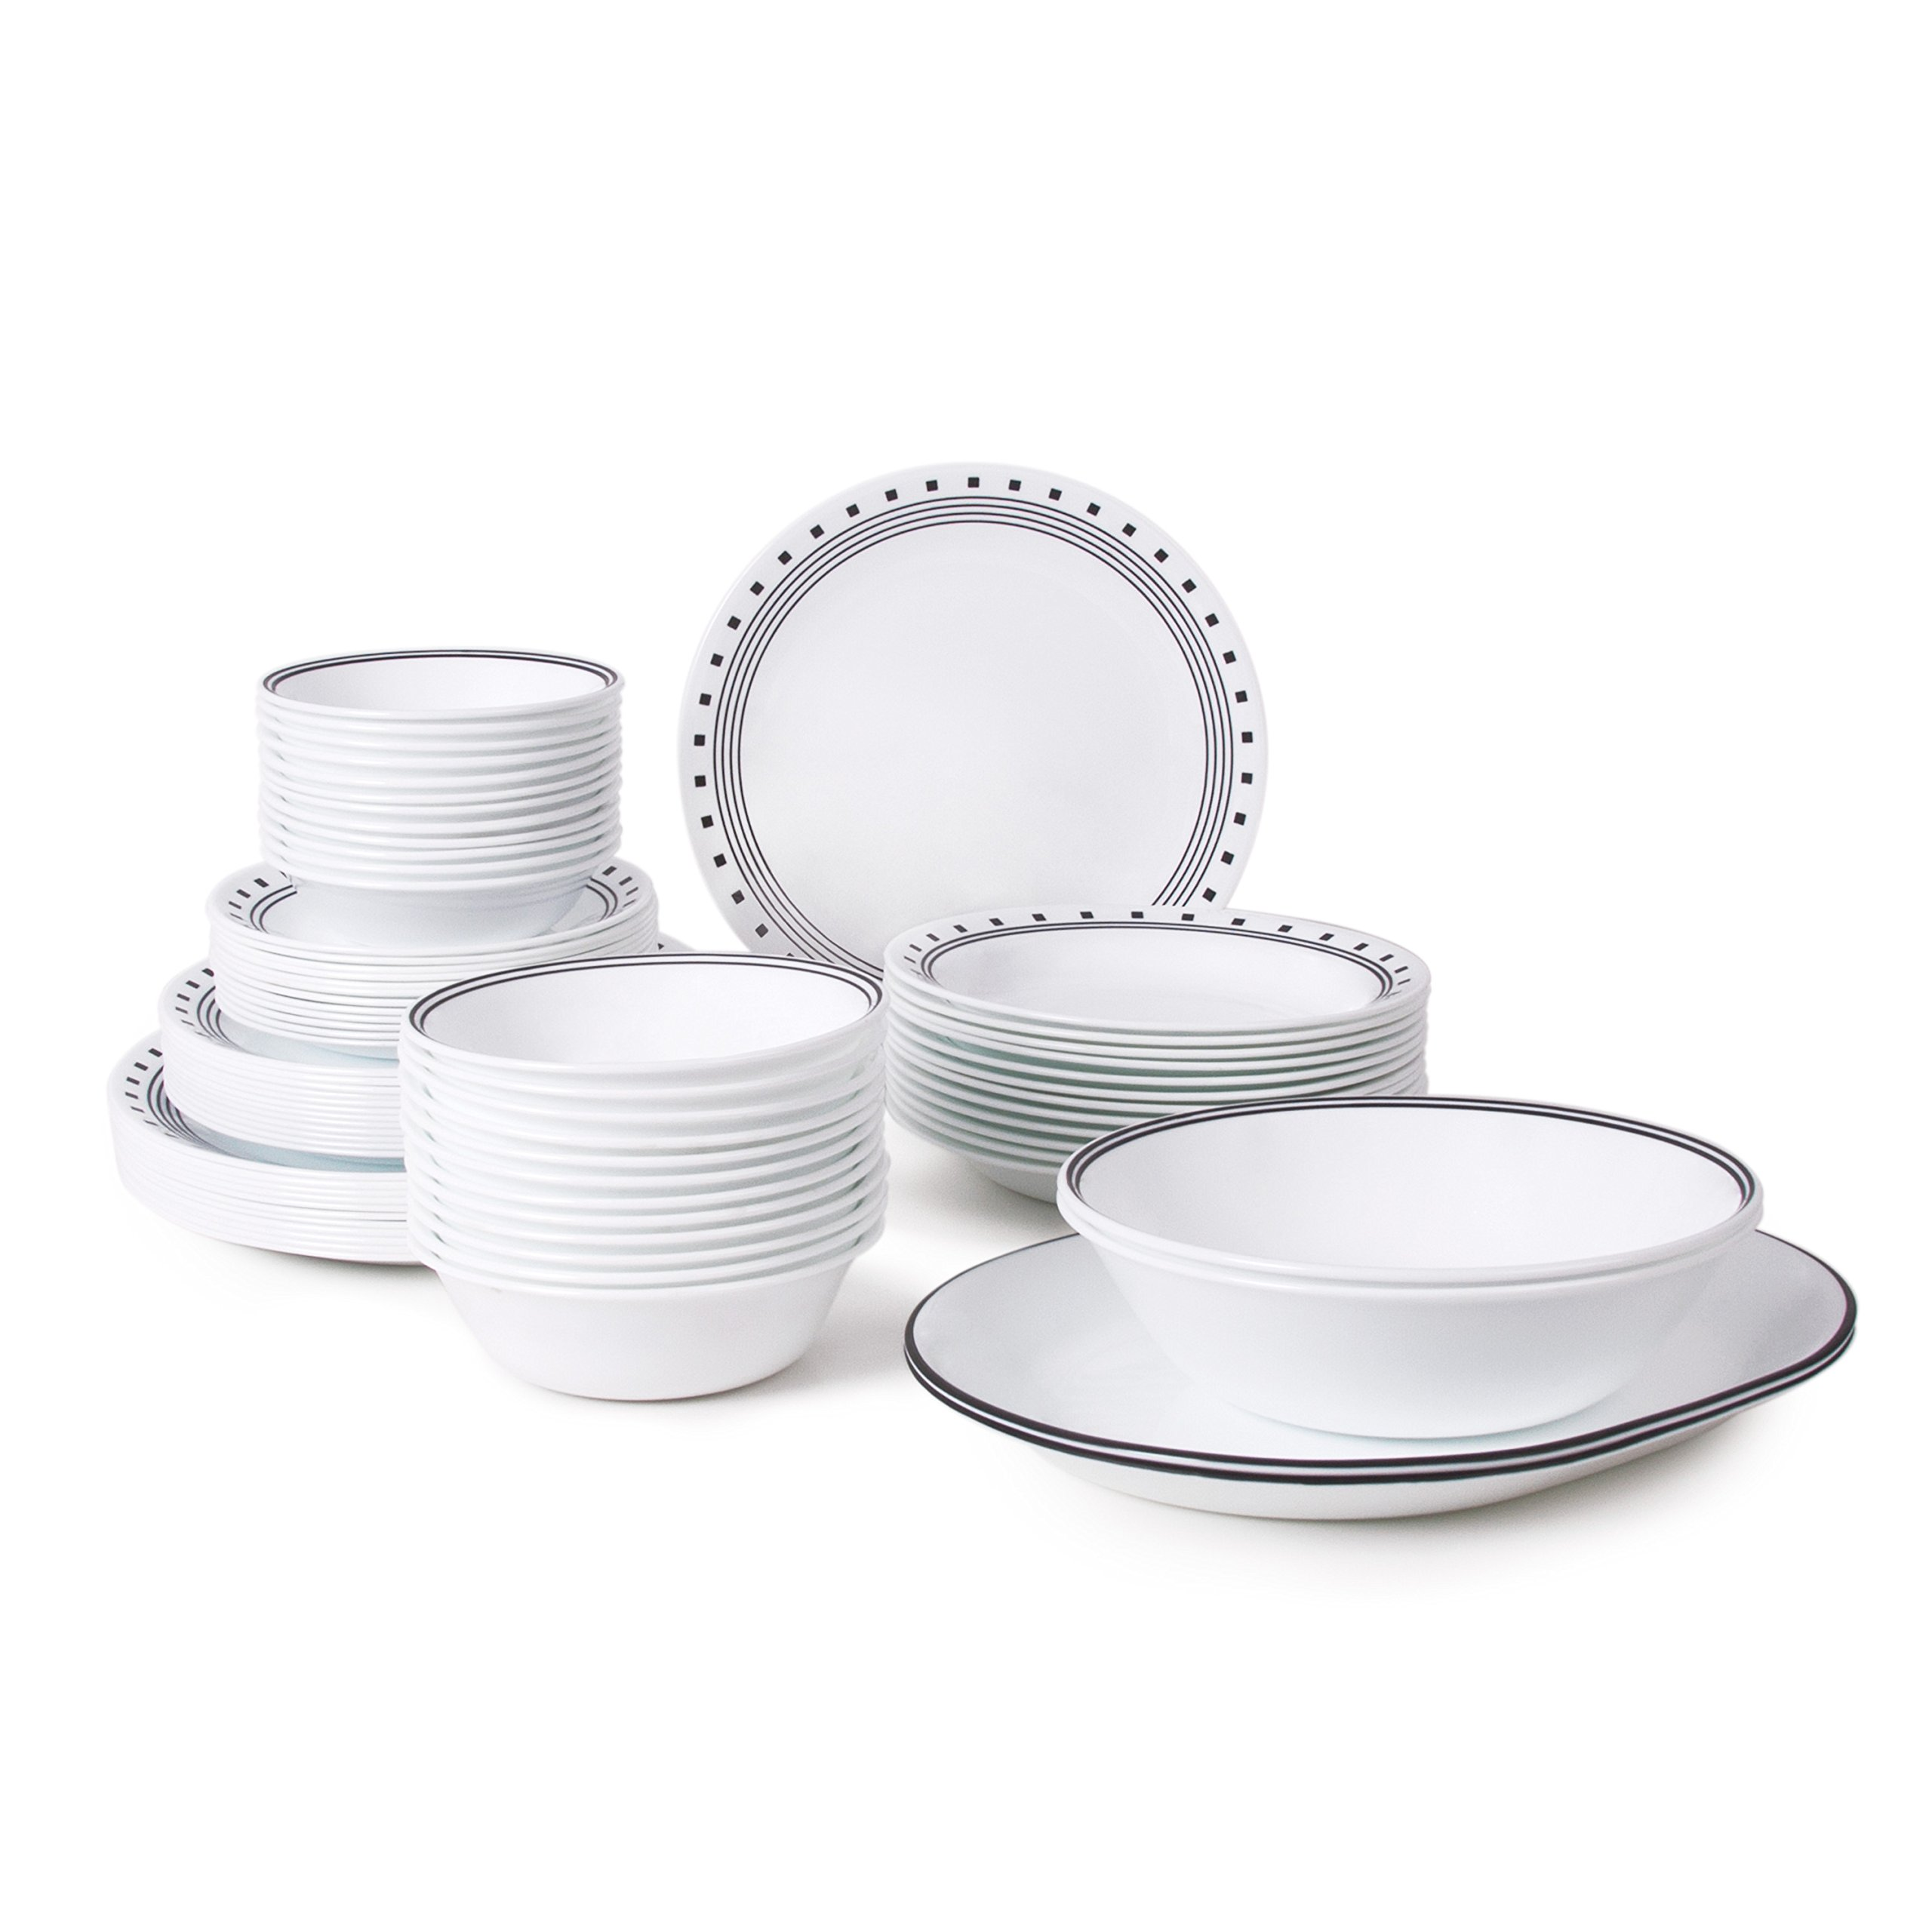 Corelle Livingware 76-Piece Dinnerware Set, Service for 12, City Block by Corelle